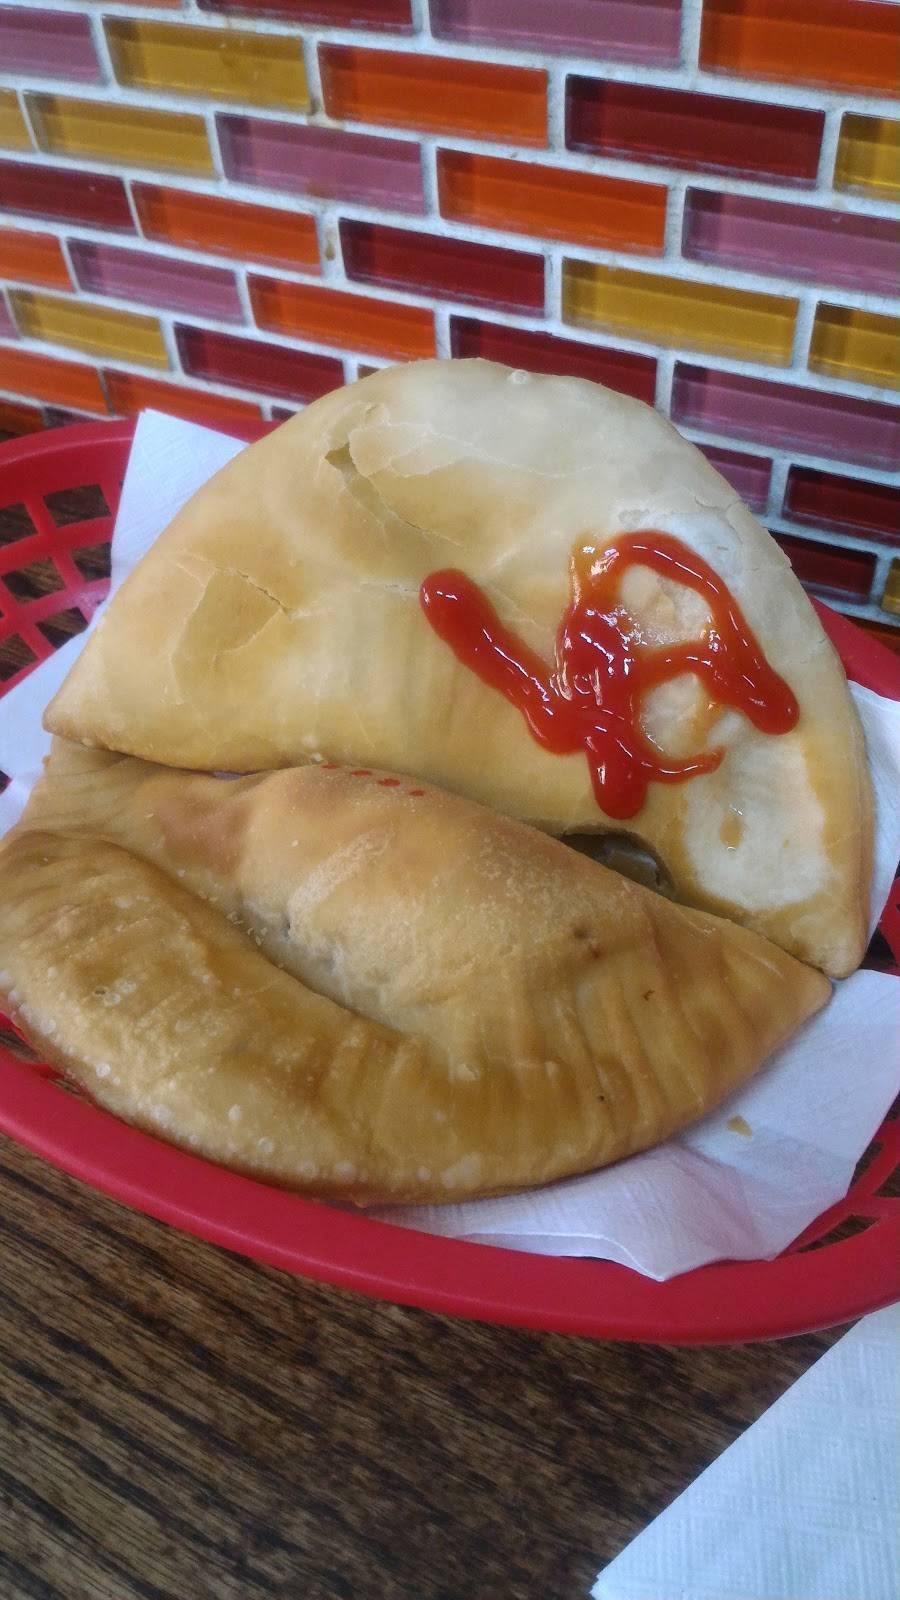 Empanadas Monumental | bakery | 4093 Broadway, New York, NY 10032, USA | 2129239300 OR +1 212-923-9300